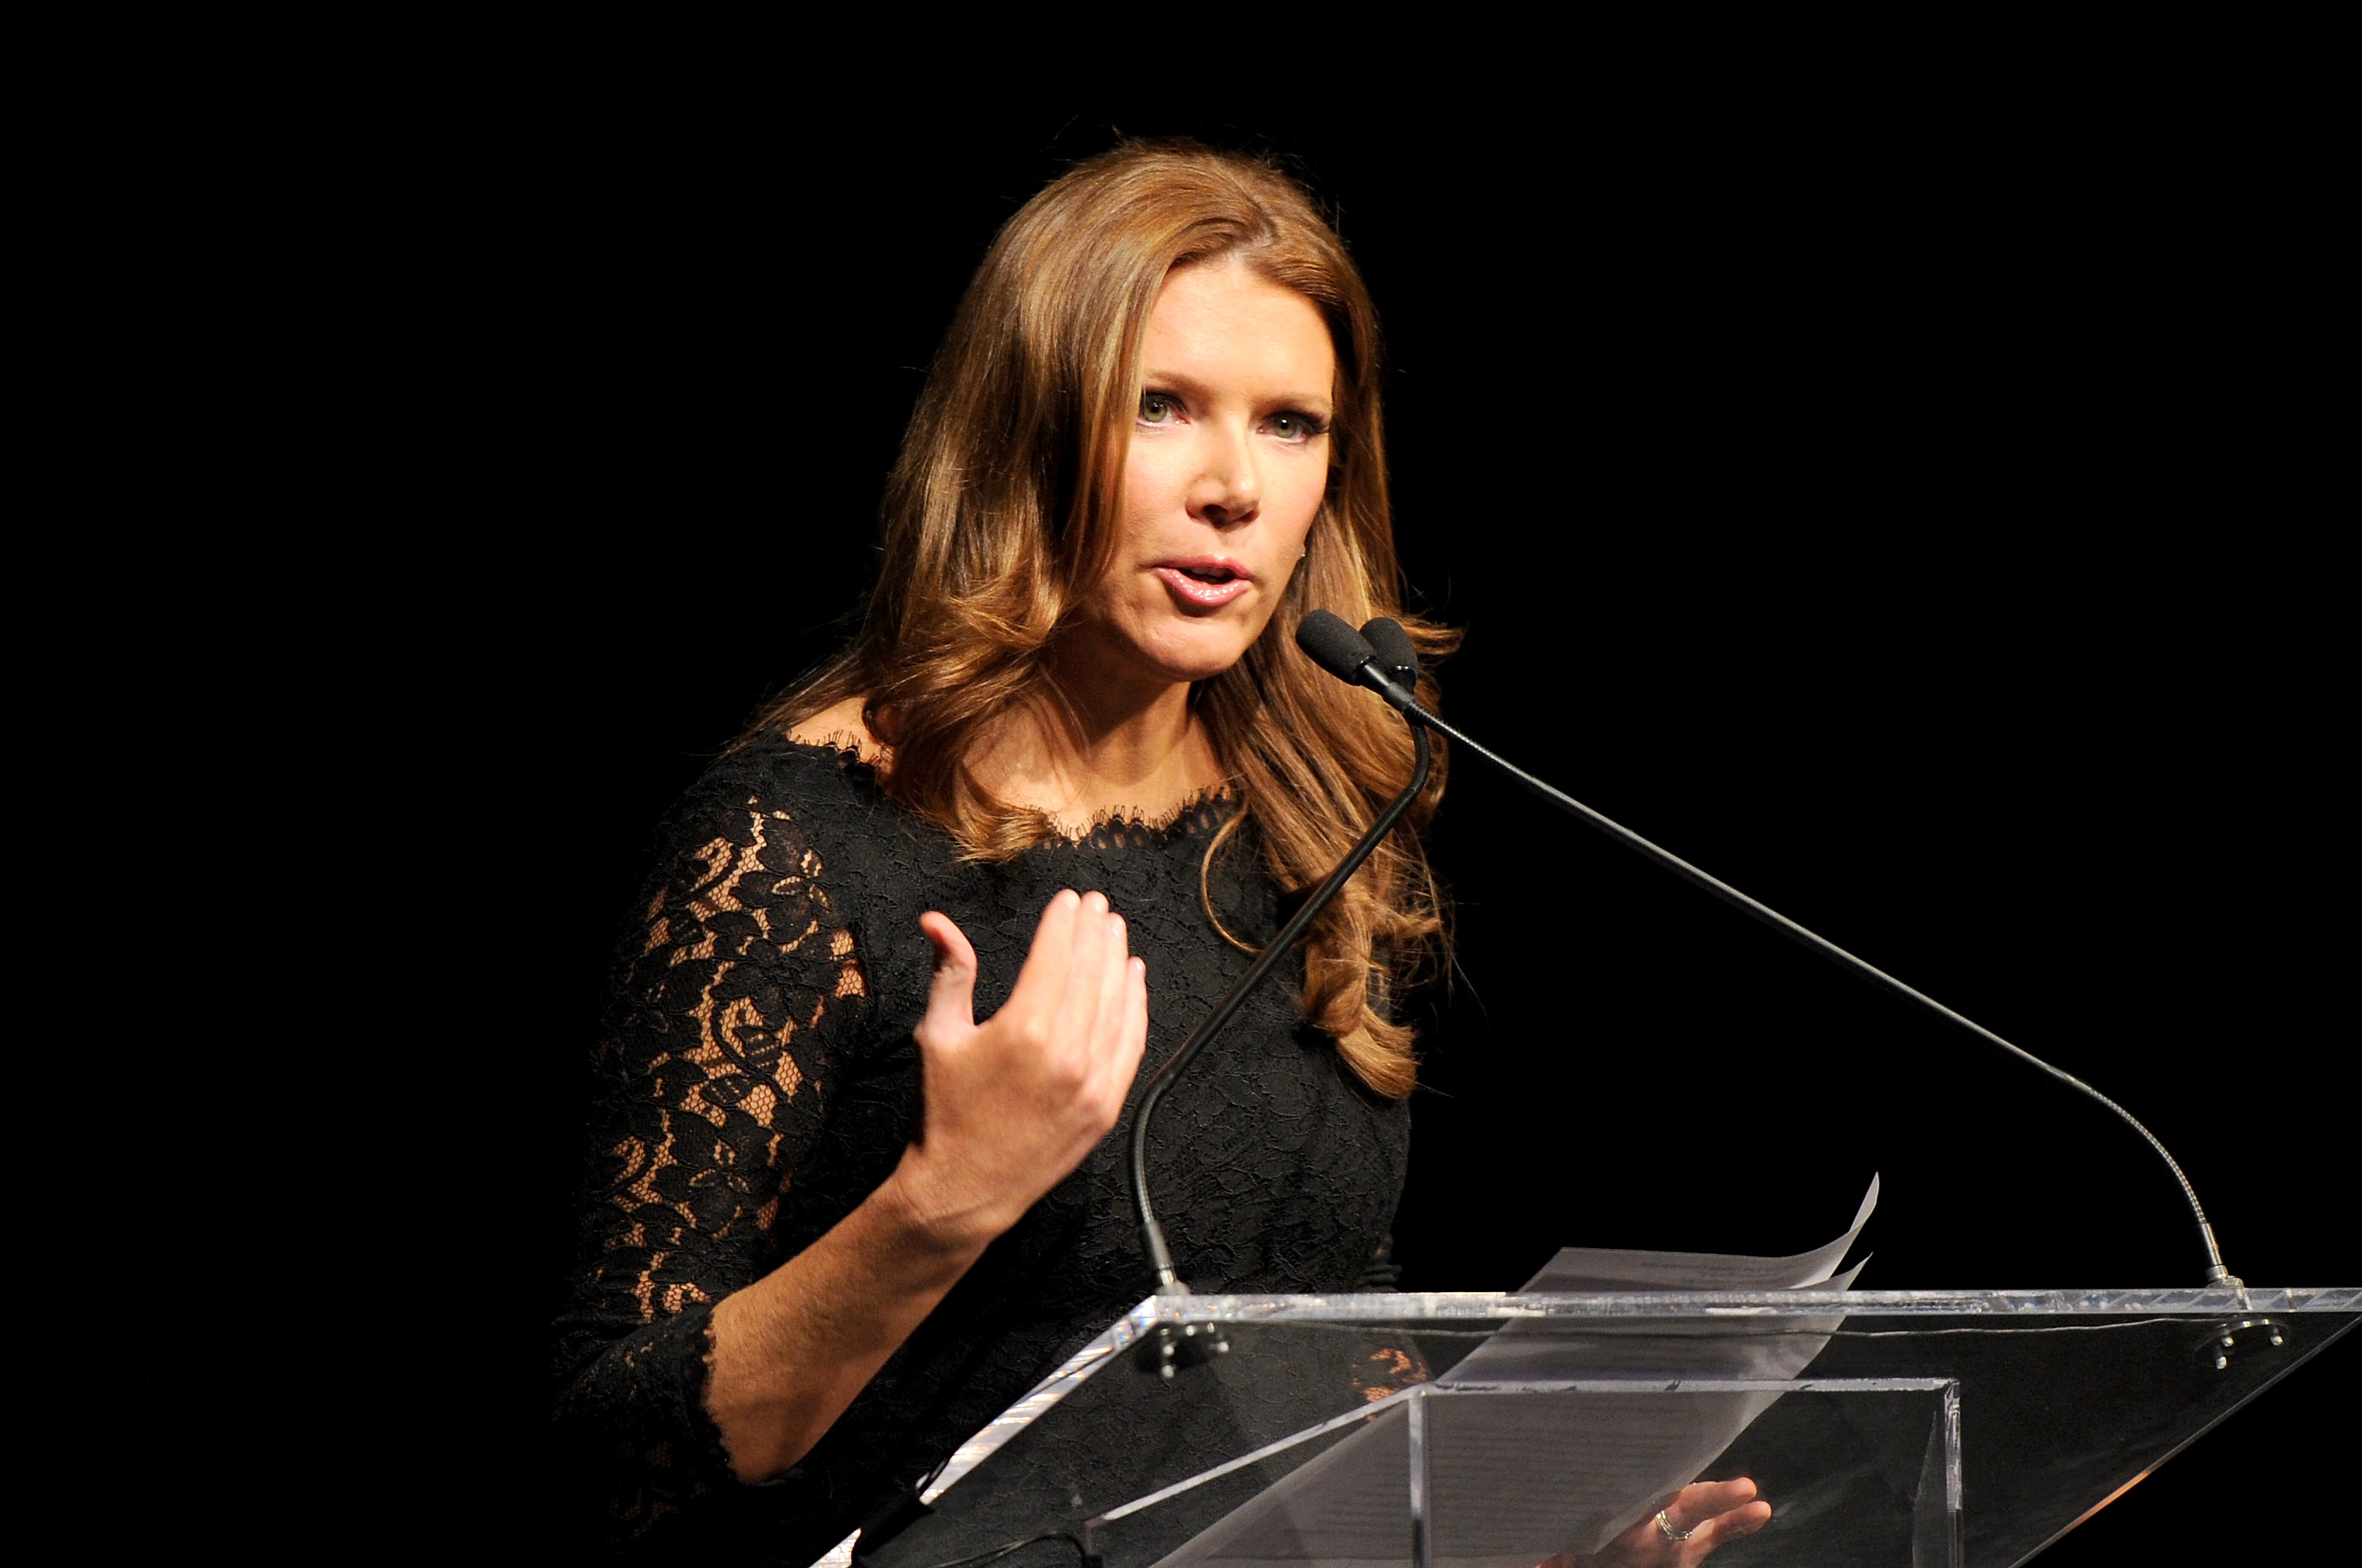 霍士商業網絡電視(Fox Business Network)女主播崔西・列根(Trish Regan)。(Craig Barritt/Getty Images for Jefferson Awards Foundation)